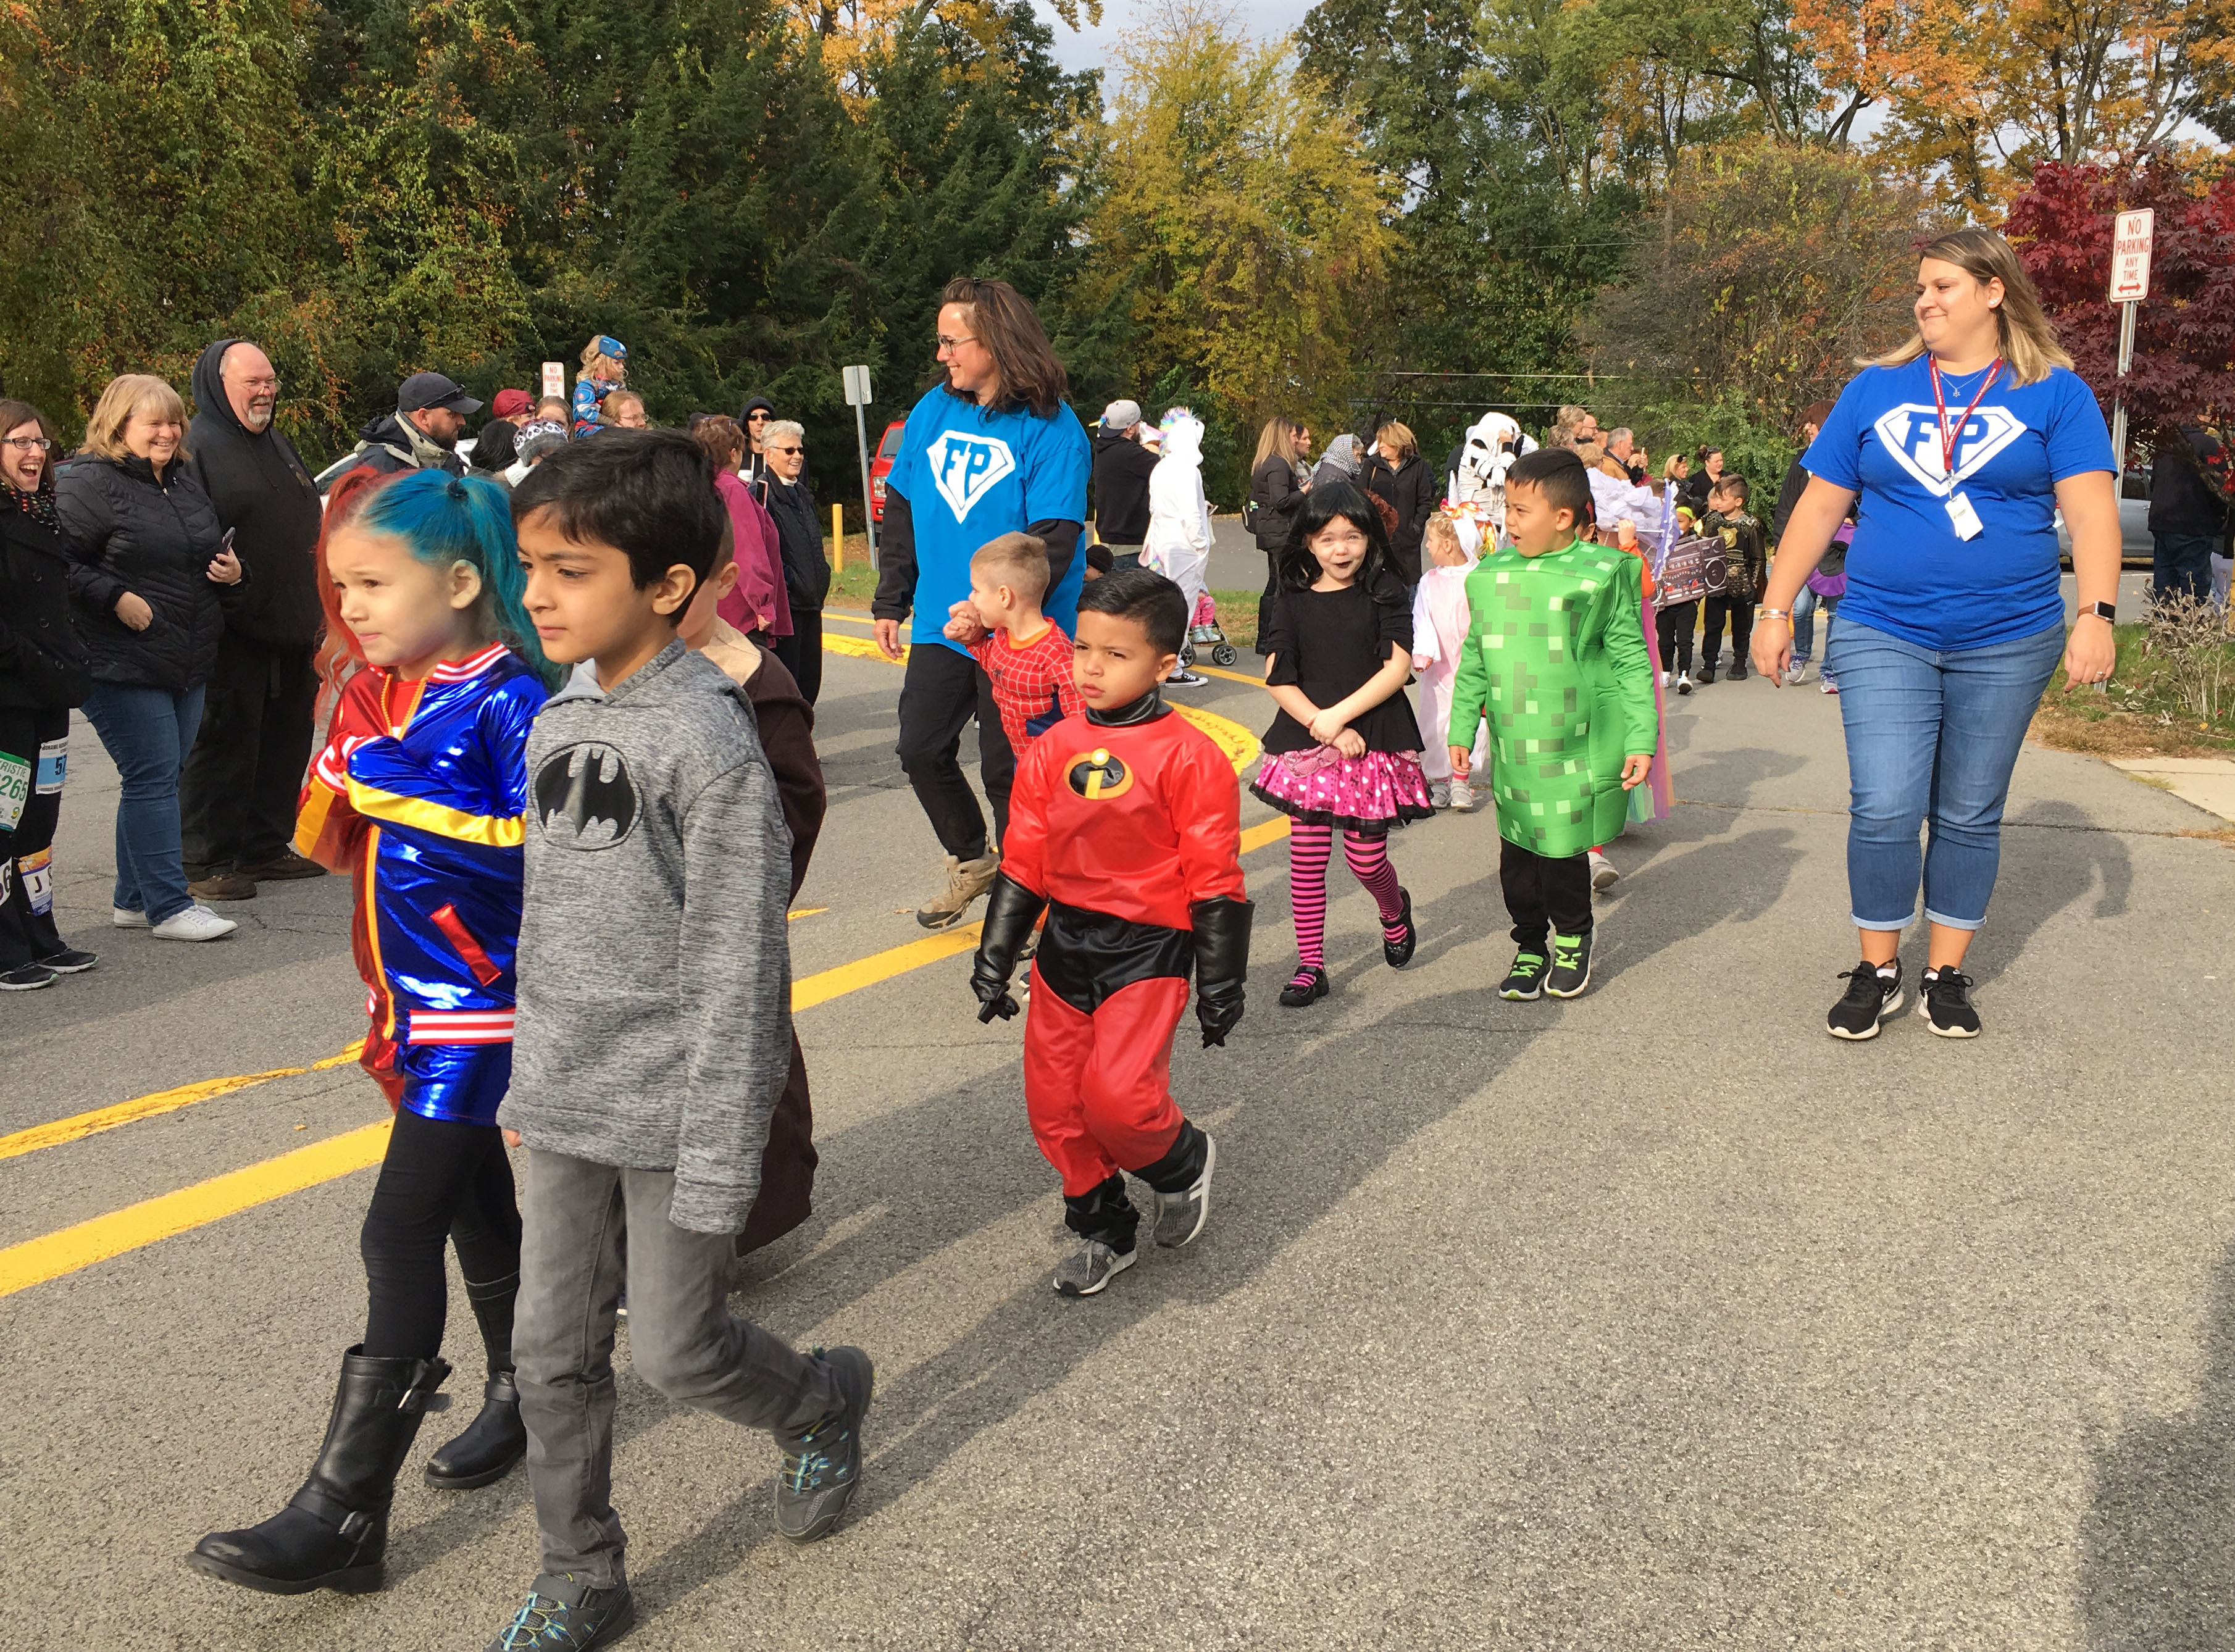 children march in a halloween parade in costume